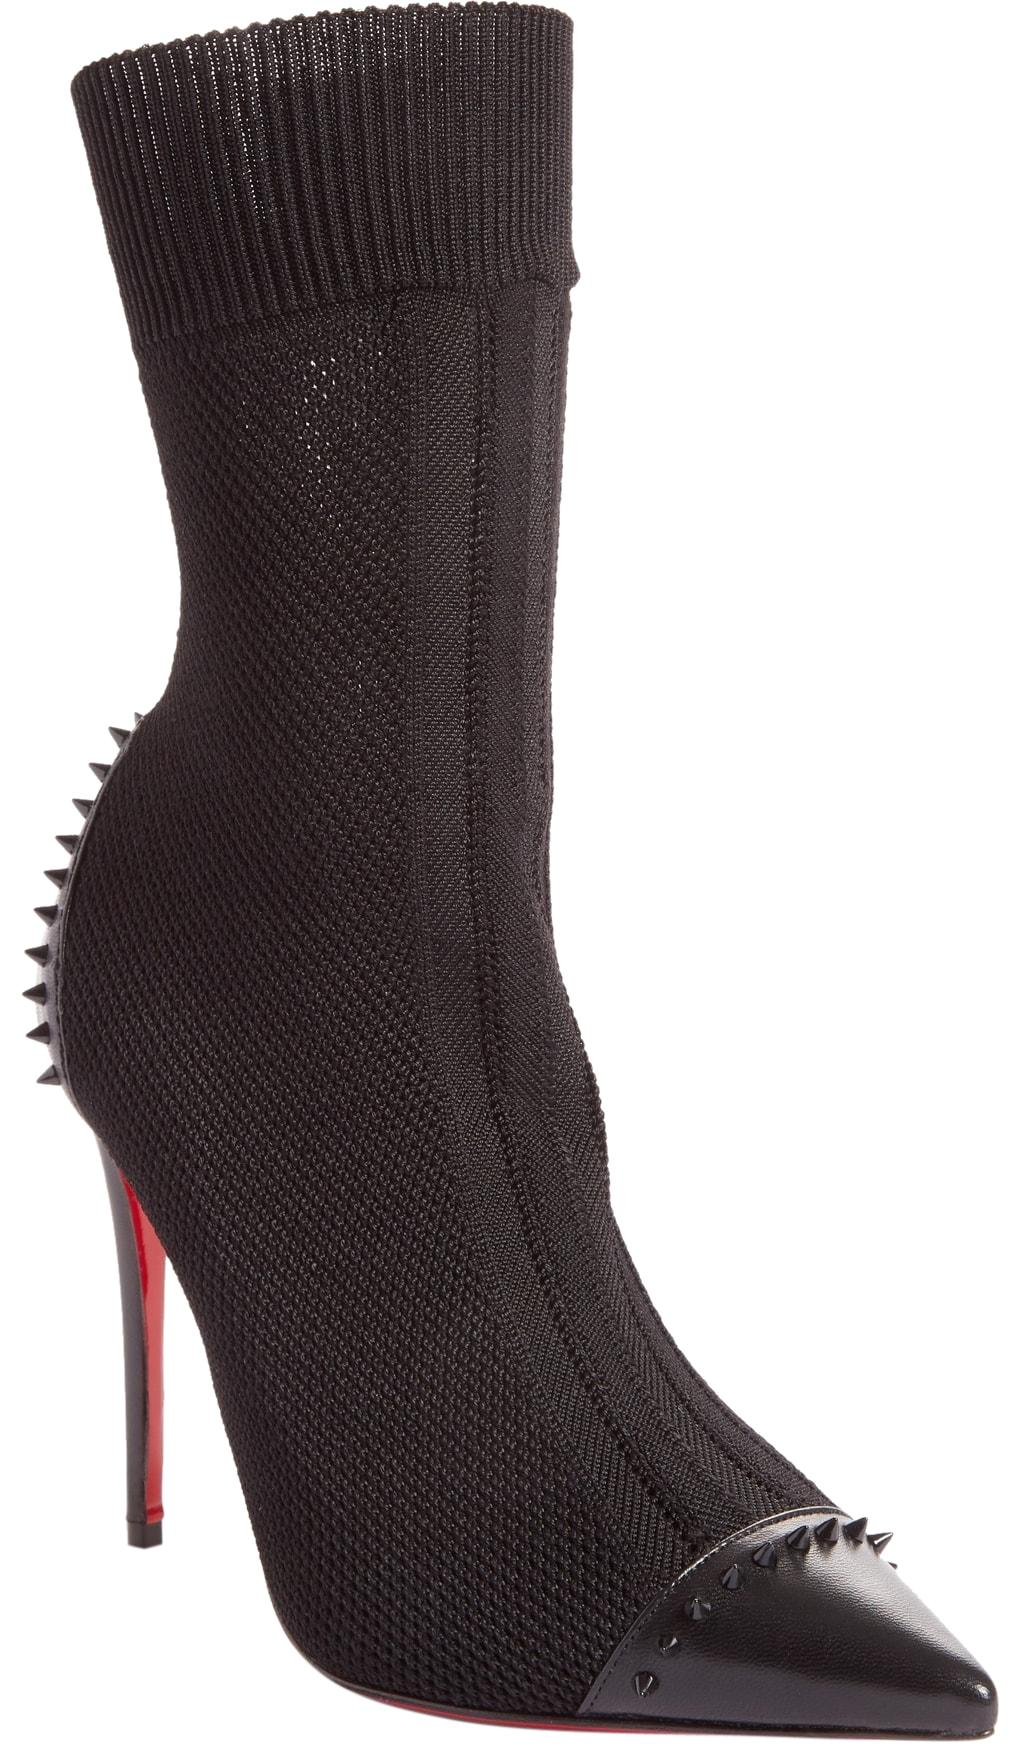 Christian Louboutin Black Dovi Dova Spiked Pointy Toe Boots/Booties Size EU 37 (Approx. US 7) Regular (M, B)